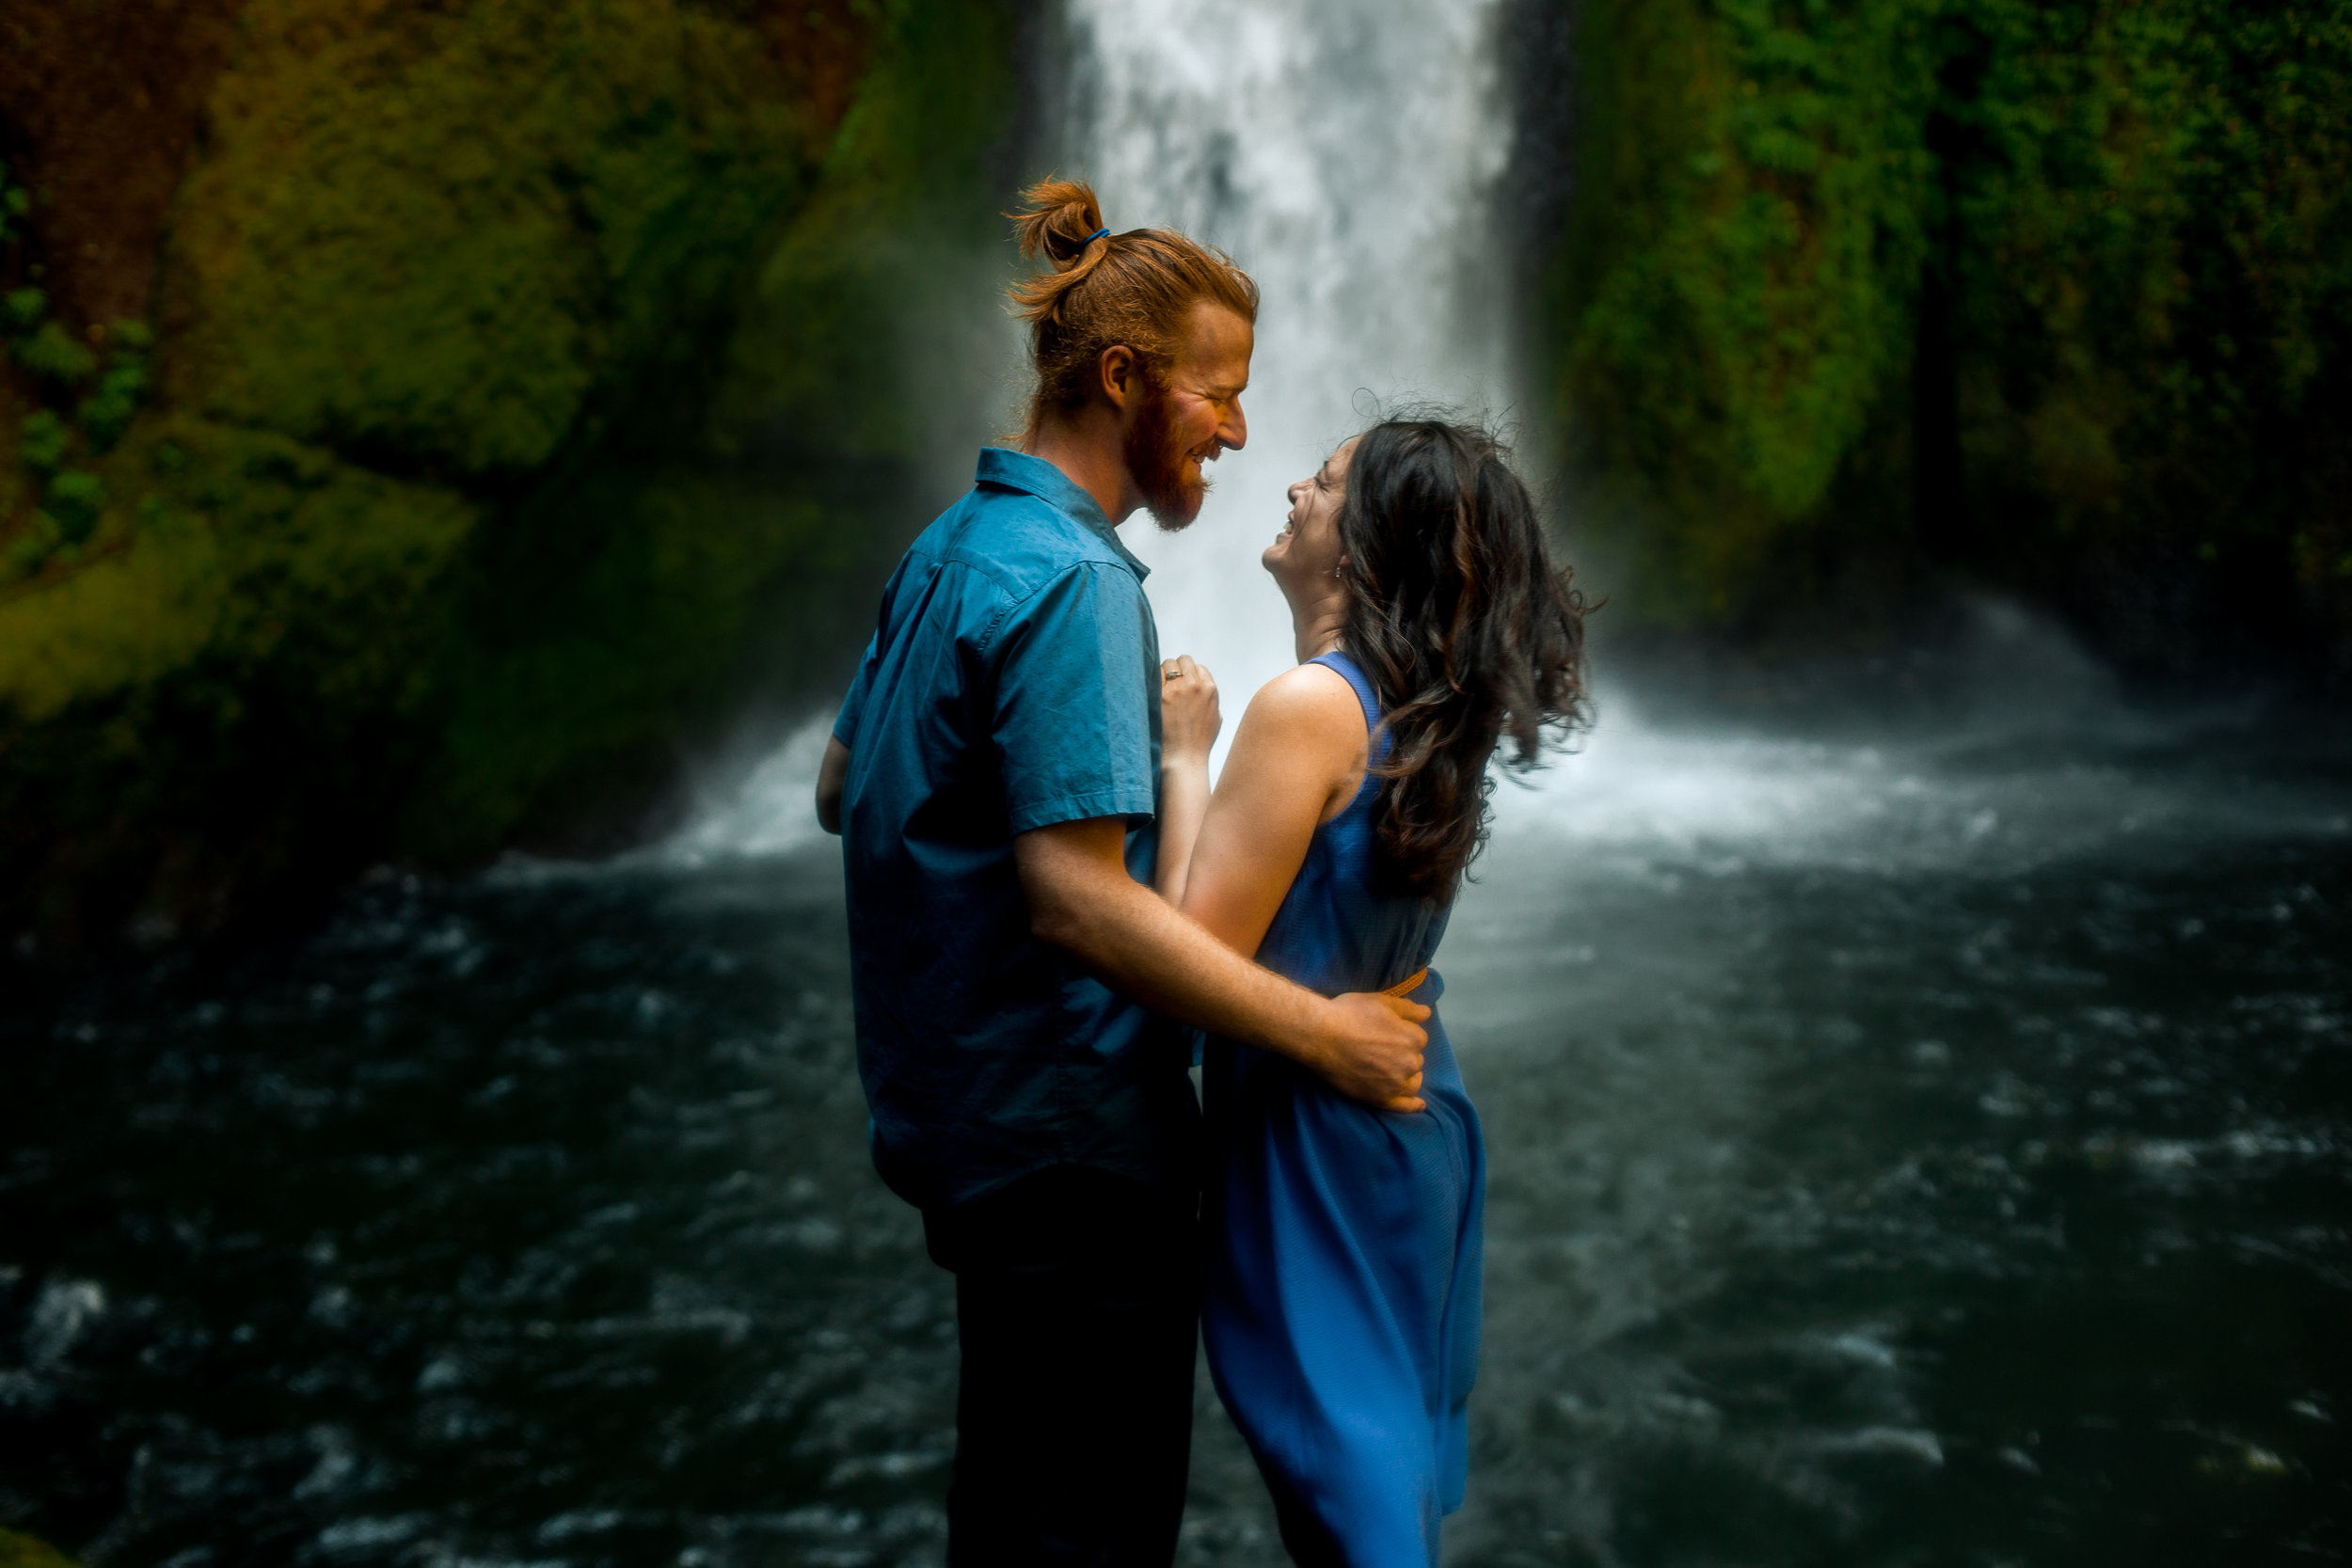 nicole-daacke-photography-wahclella-falls-waterfall-engagement-session-portland-engagement-photographer-columbia-river-gorge-oregon-elopement-photographer-9.jpg